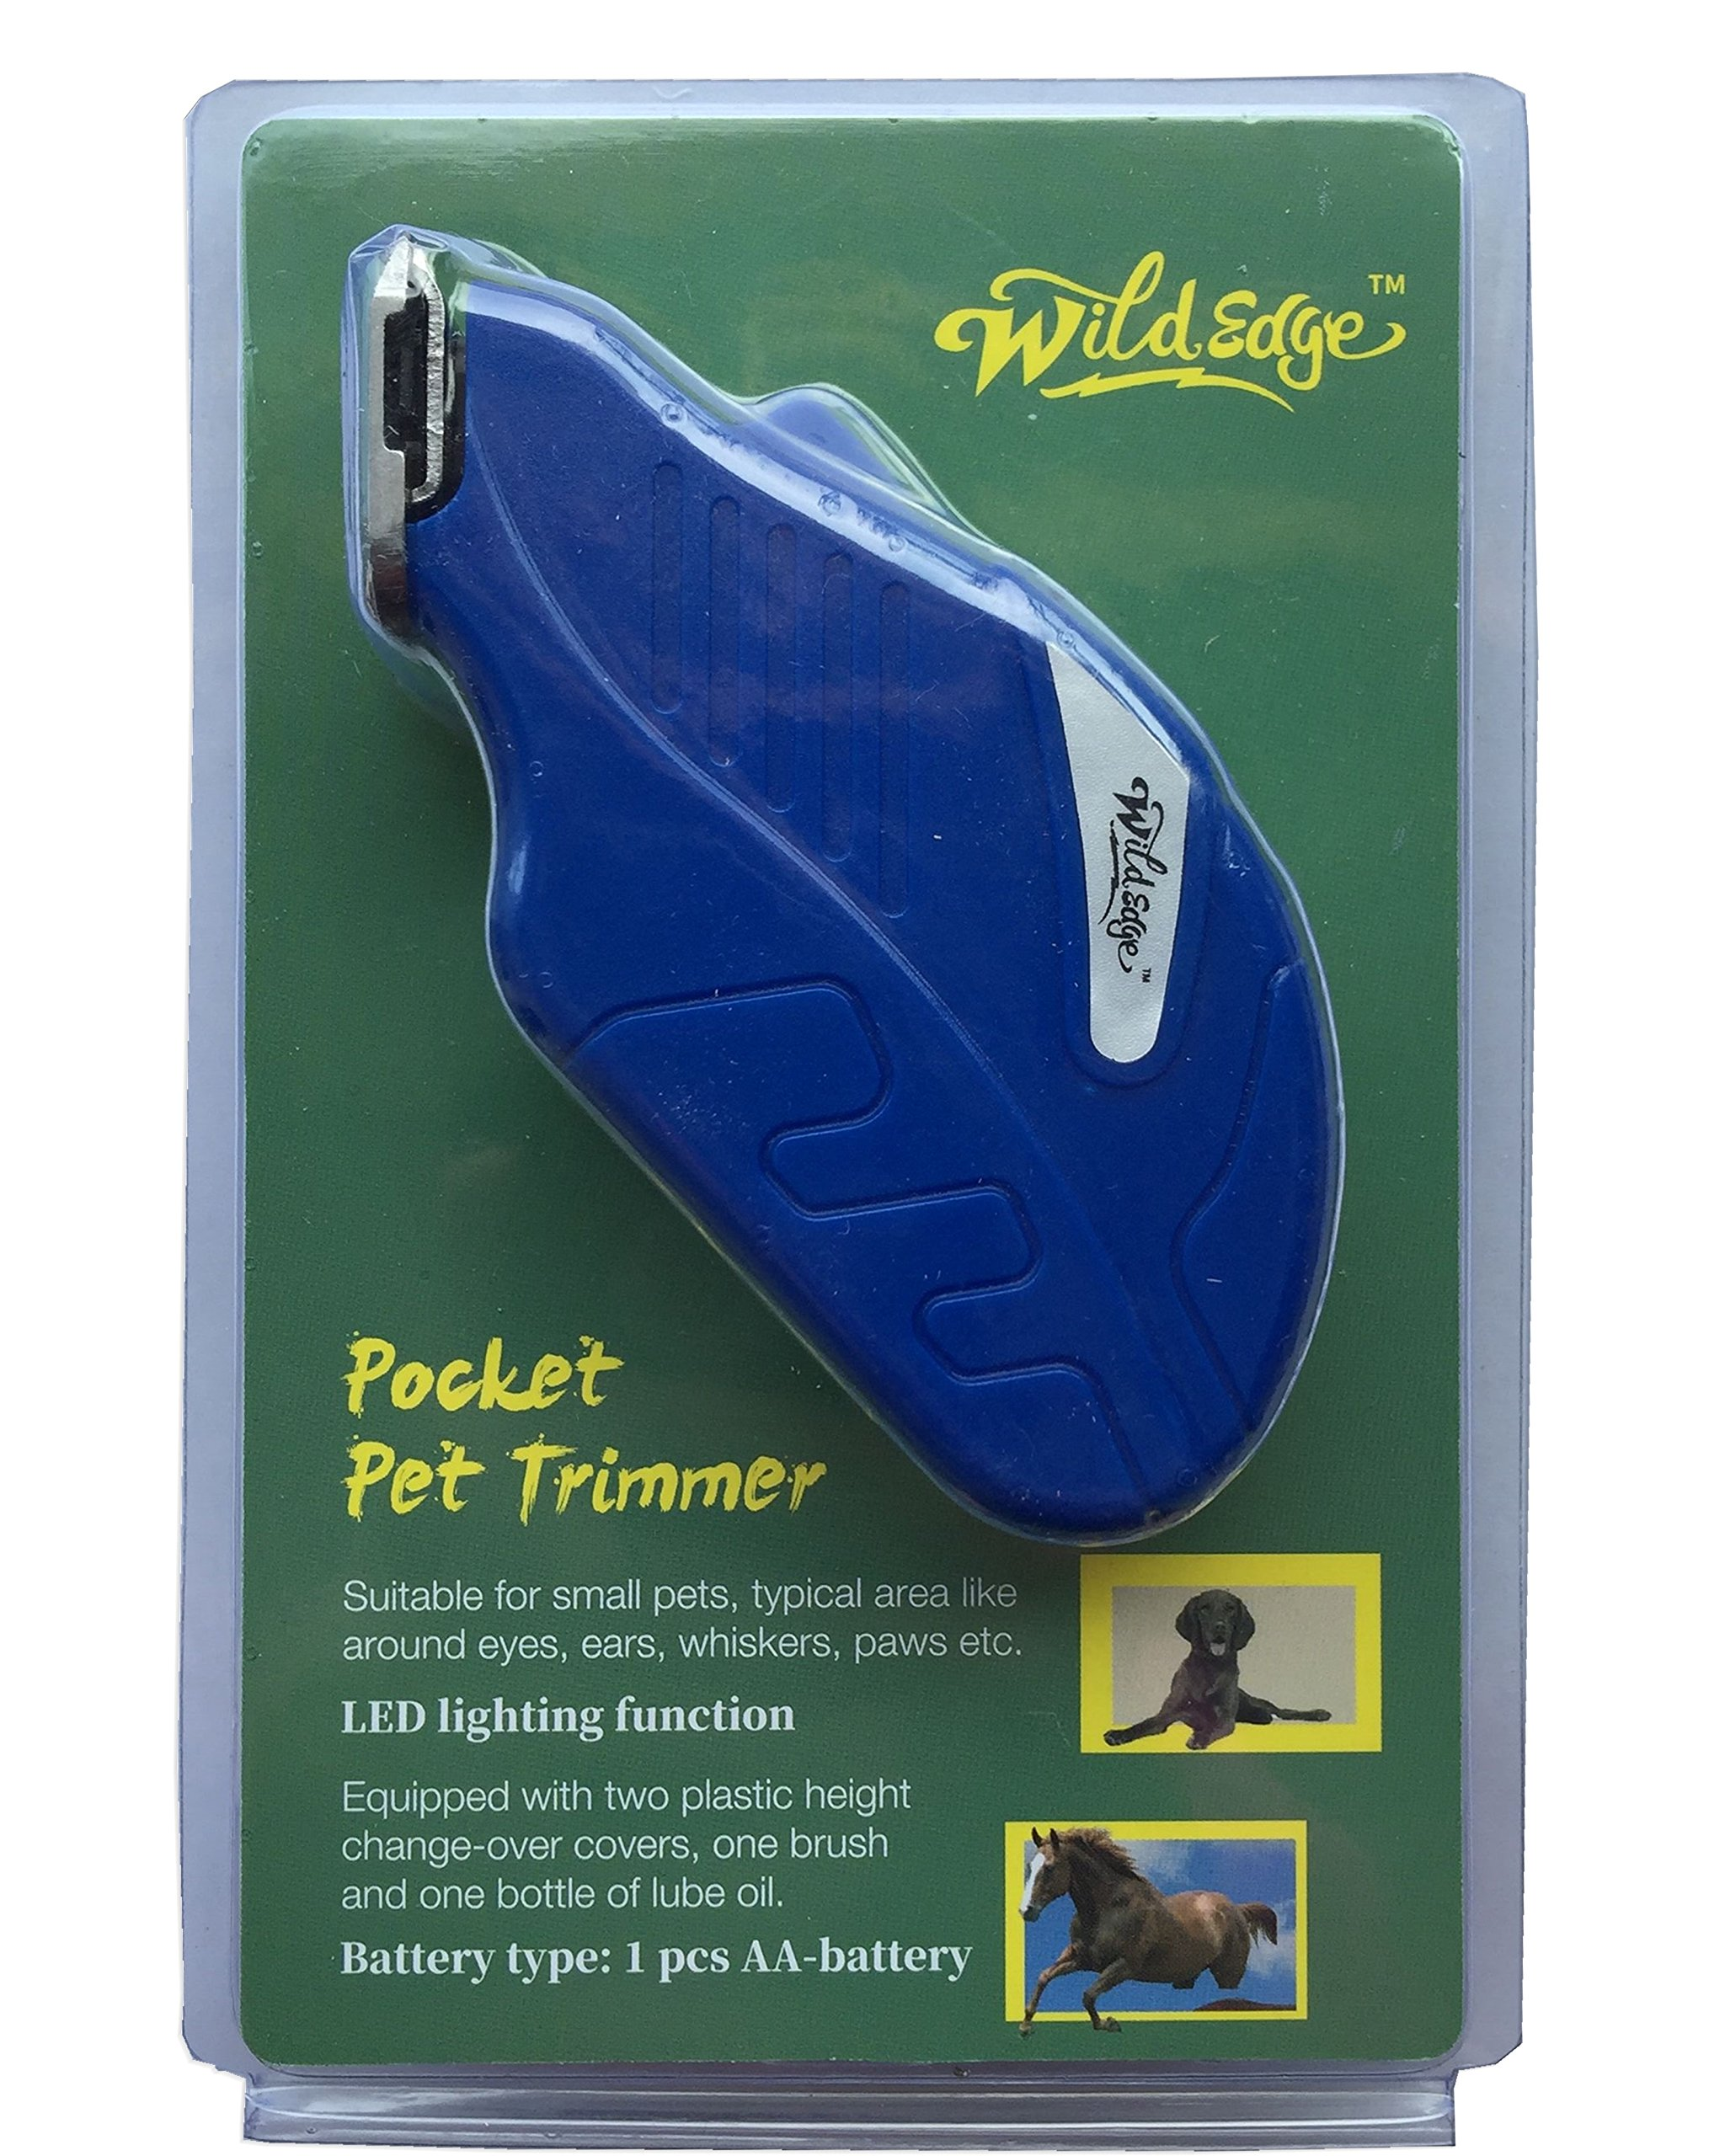 Wild Edge Dog Trimmer, Cat Trimmer, Horse Trimmer, Small Animals Pocket Grooming Trimmer Kit